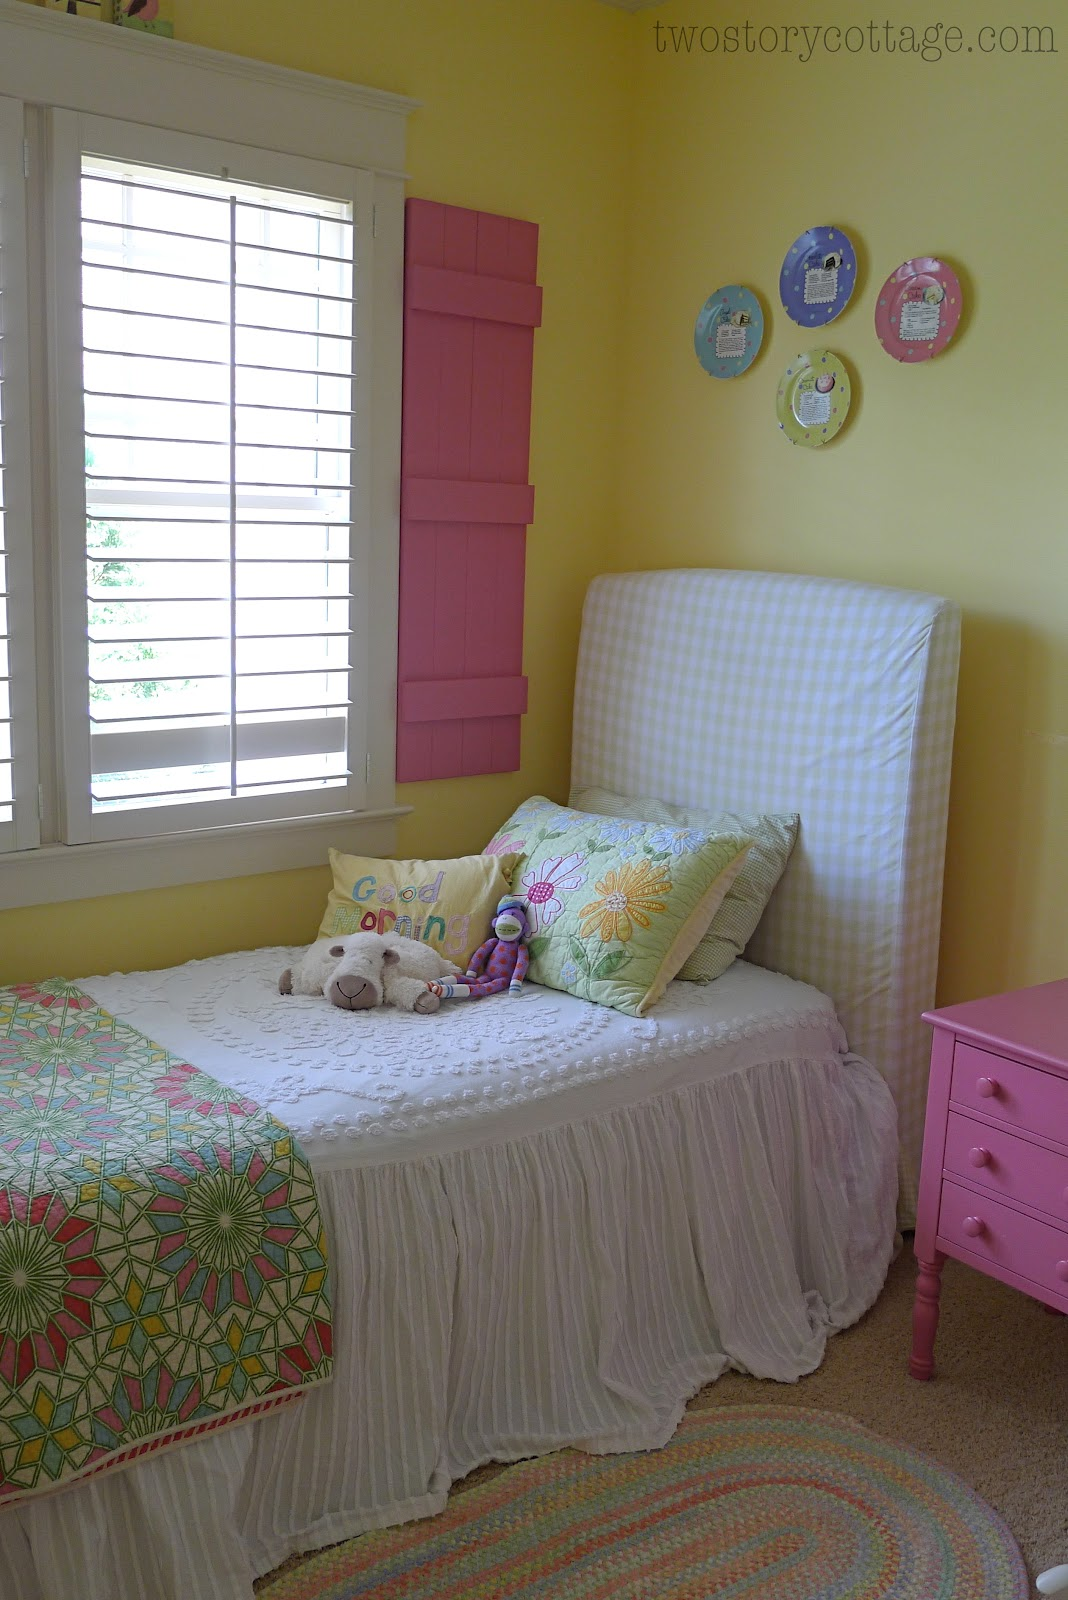 Decorating With Plates {Lacey\'s Room}